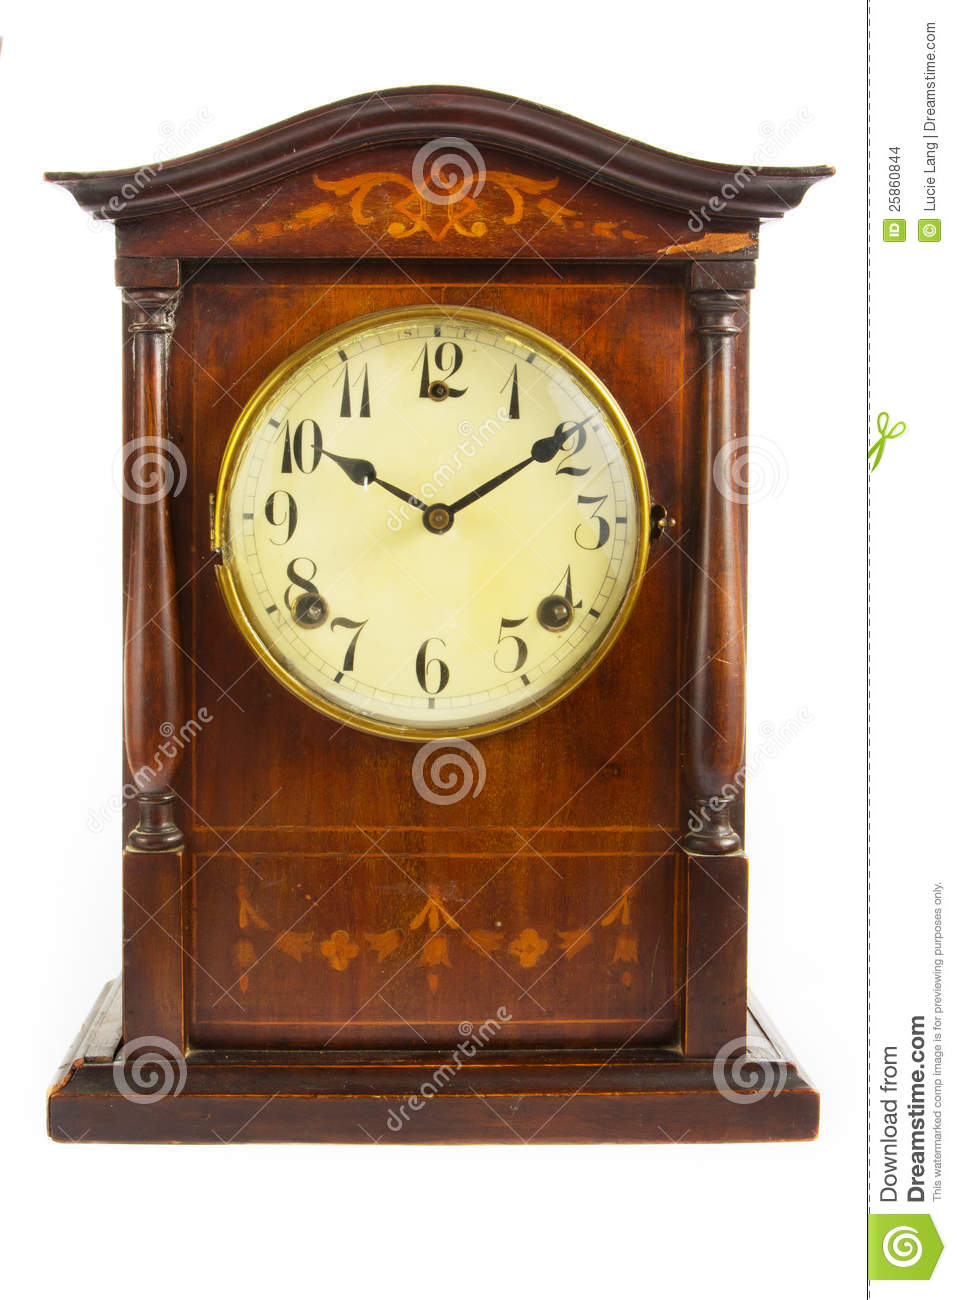 vieille horloge en bois antique sur le blanc photo stock image du fl che date 25860844. Black Bedroom Furniture Sets. Home Design Ideas